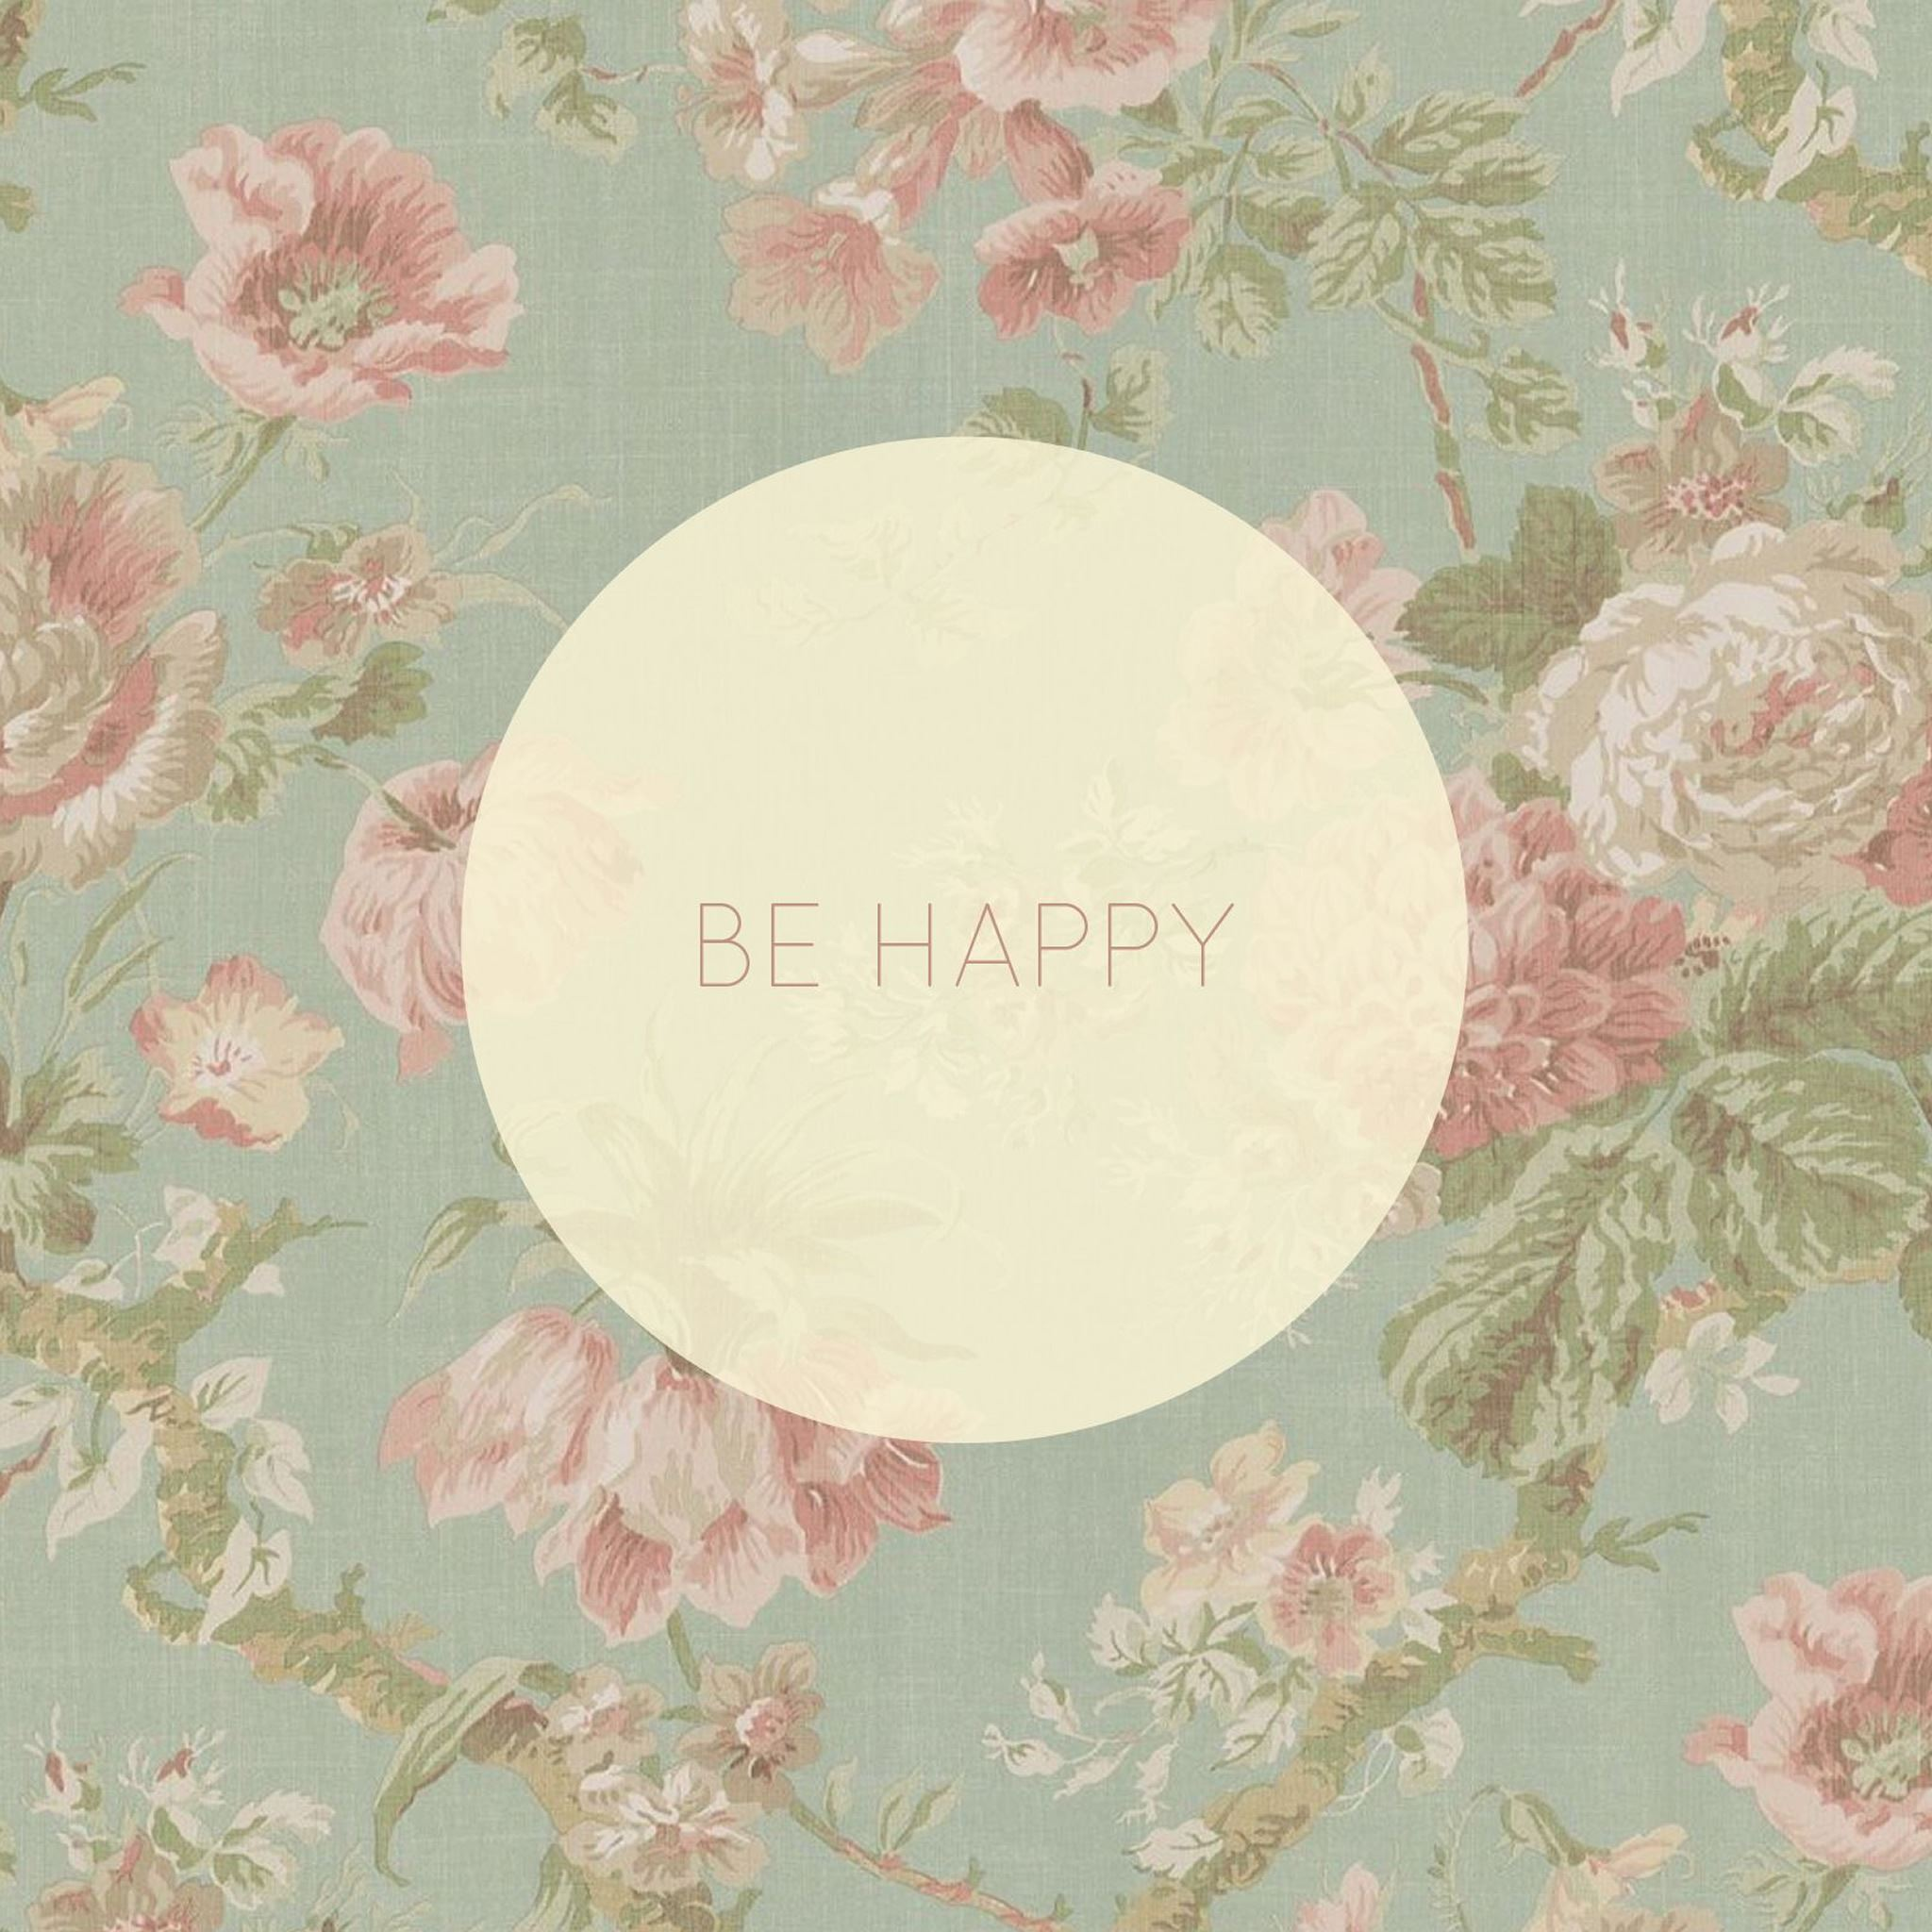 Be Happy Vintage Floral Pattern Ipad Air Wallpapers Free Download